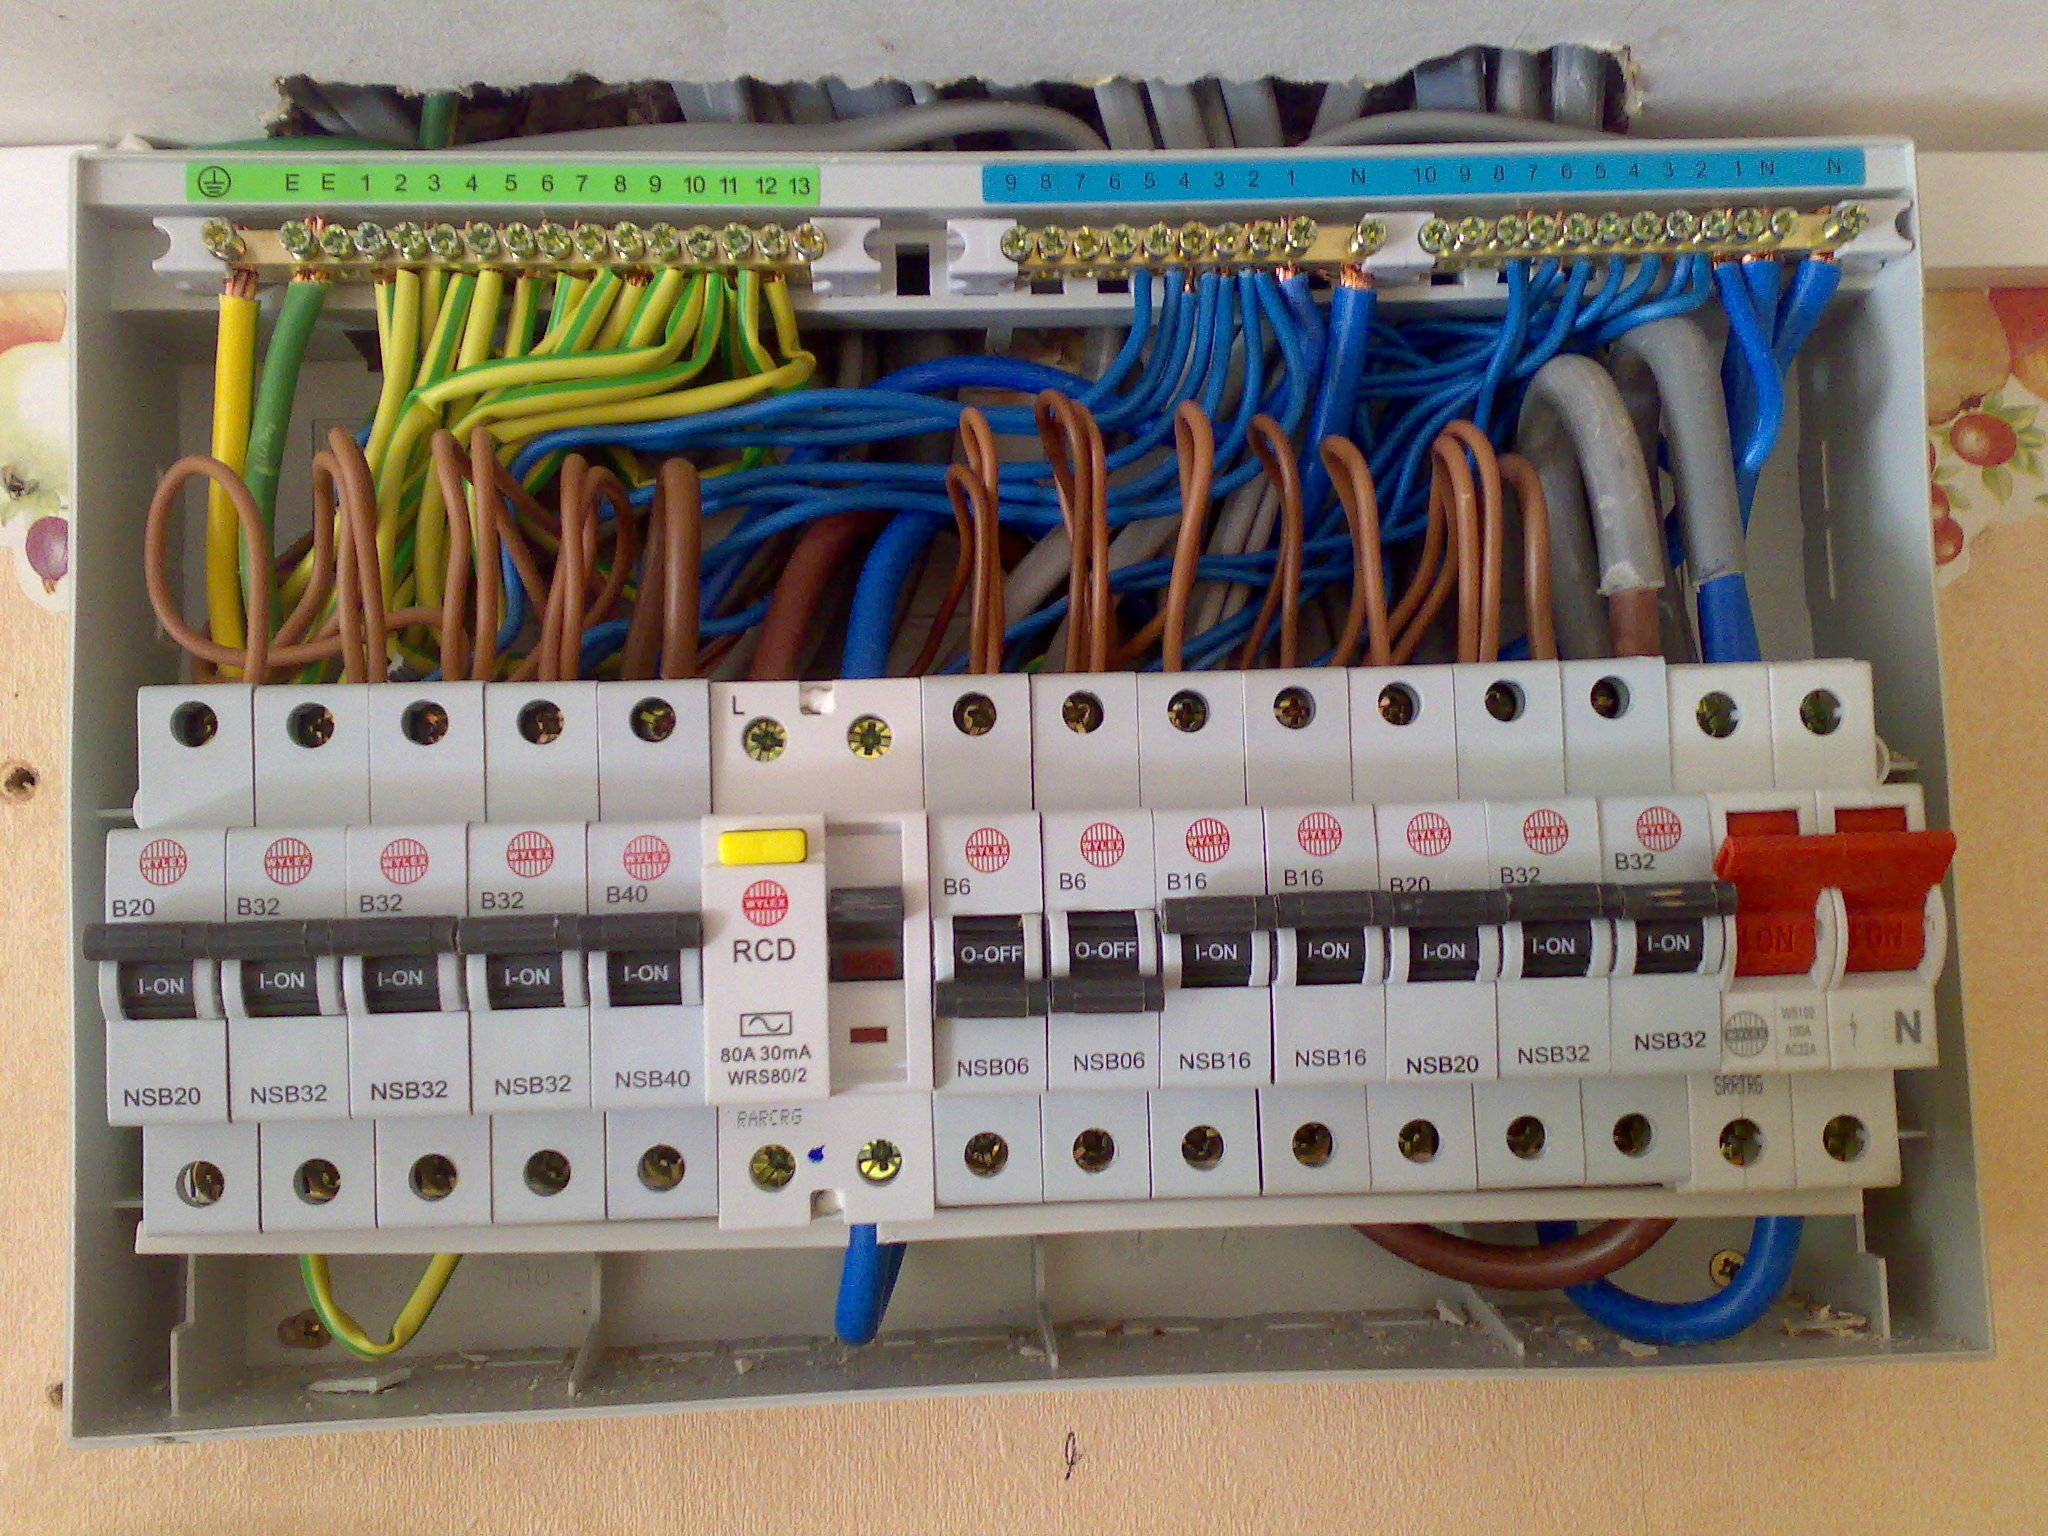 British General Consumer Unit Wiring Diagram Free Download Diagramselectrical Photosmovies Photo Albums Electric Somurich Com At